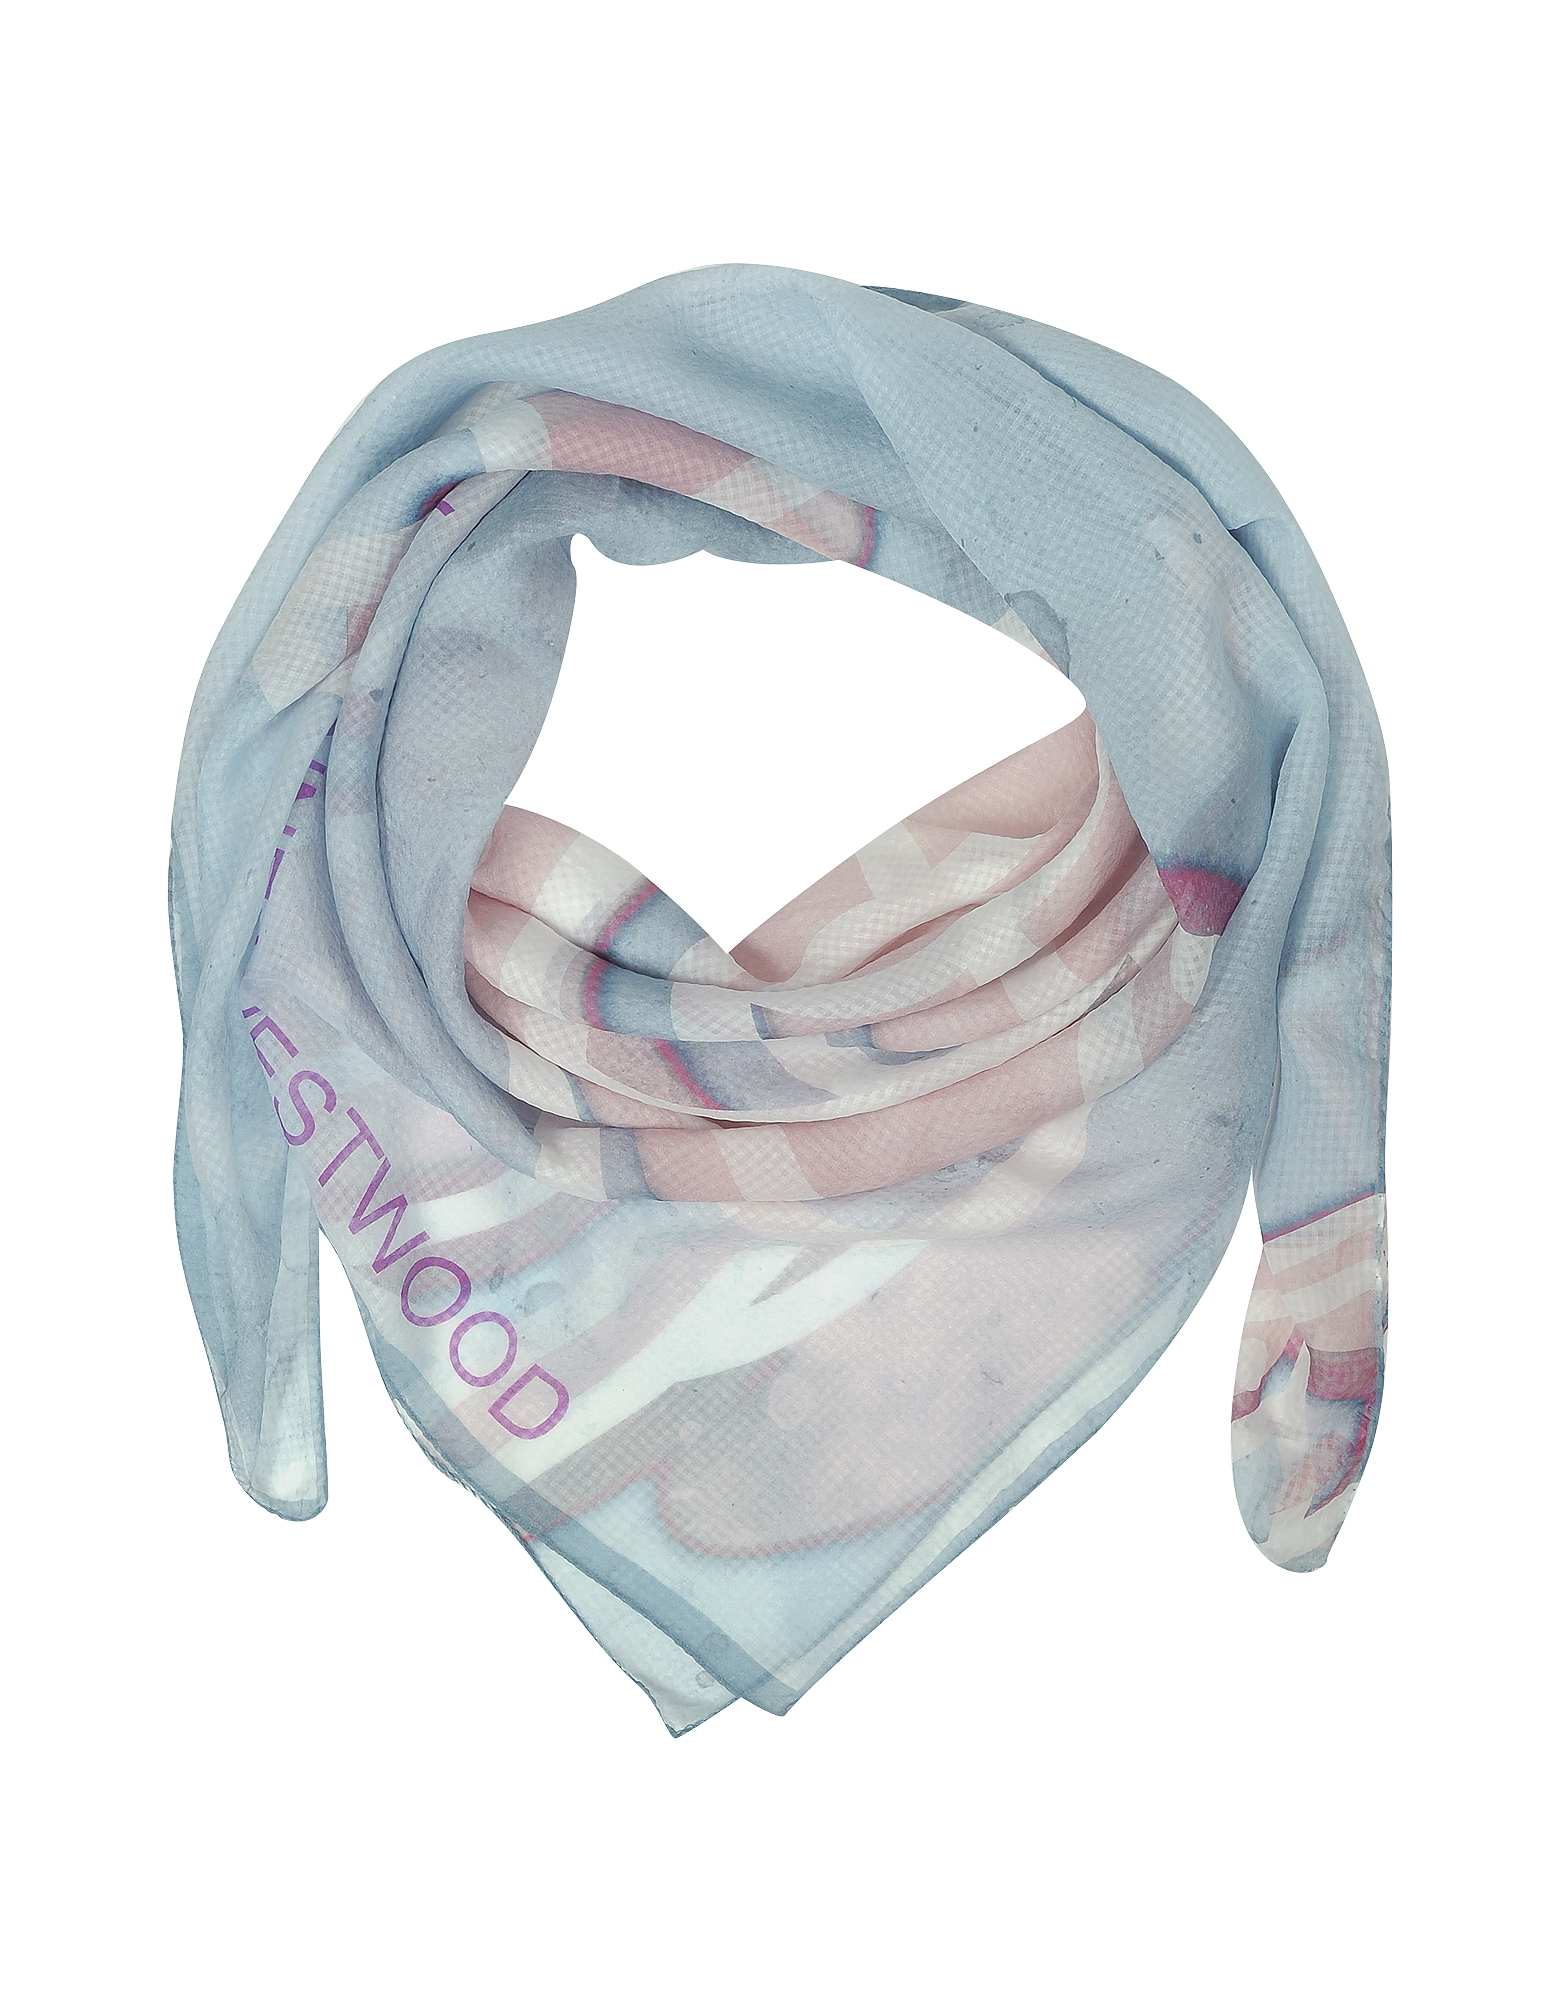 Vivienne Westwood Shawls & Wraps, Light Blue & Pink Foul Flash Orbs Print Silk Wrap